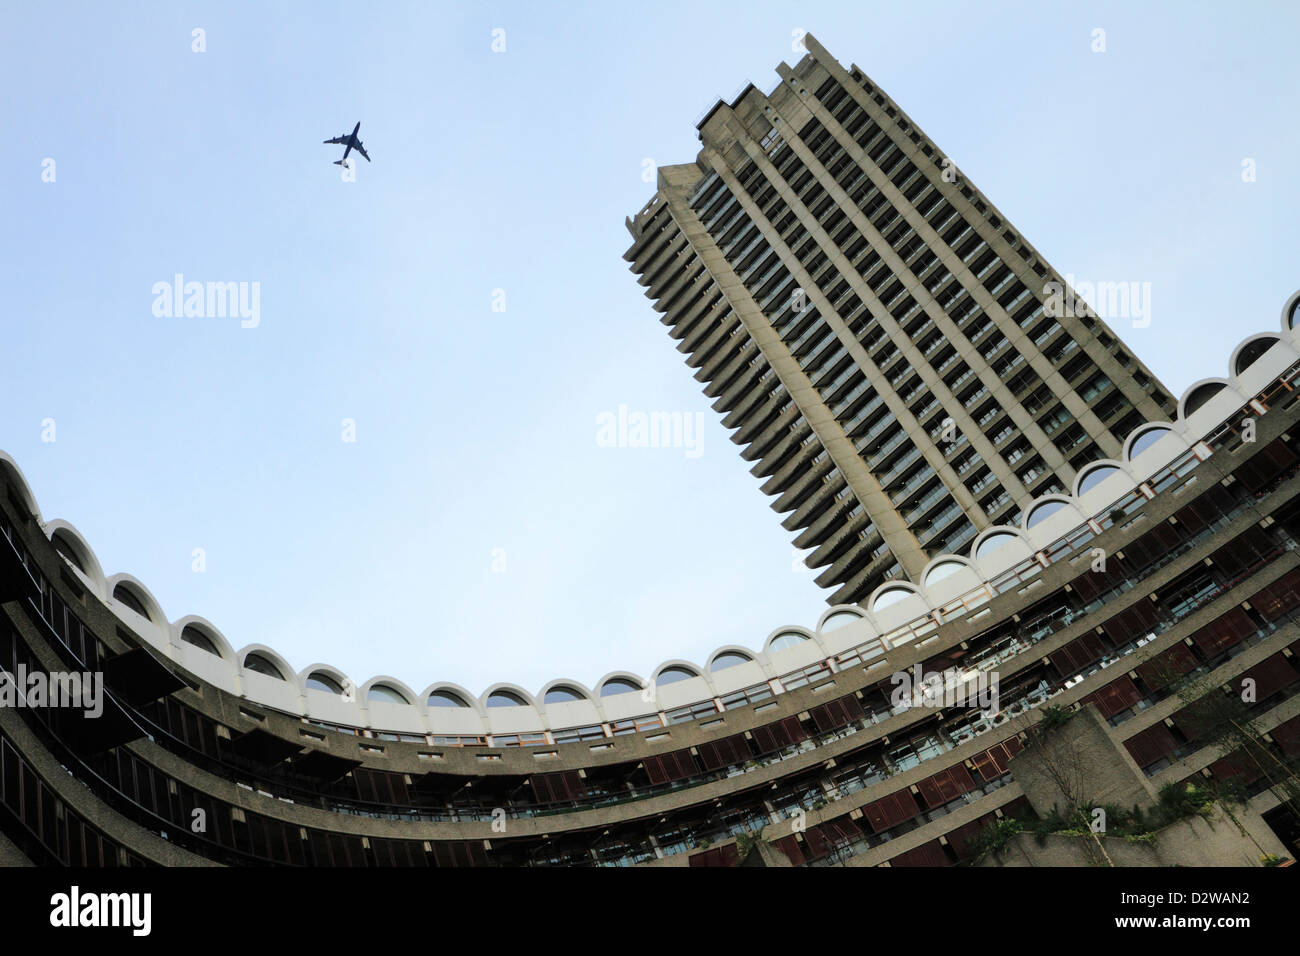 Residential apartments, The Barbican, London - Stock Image